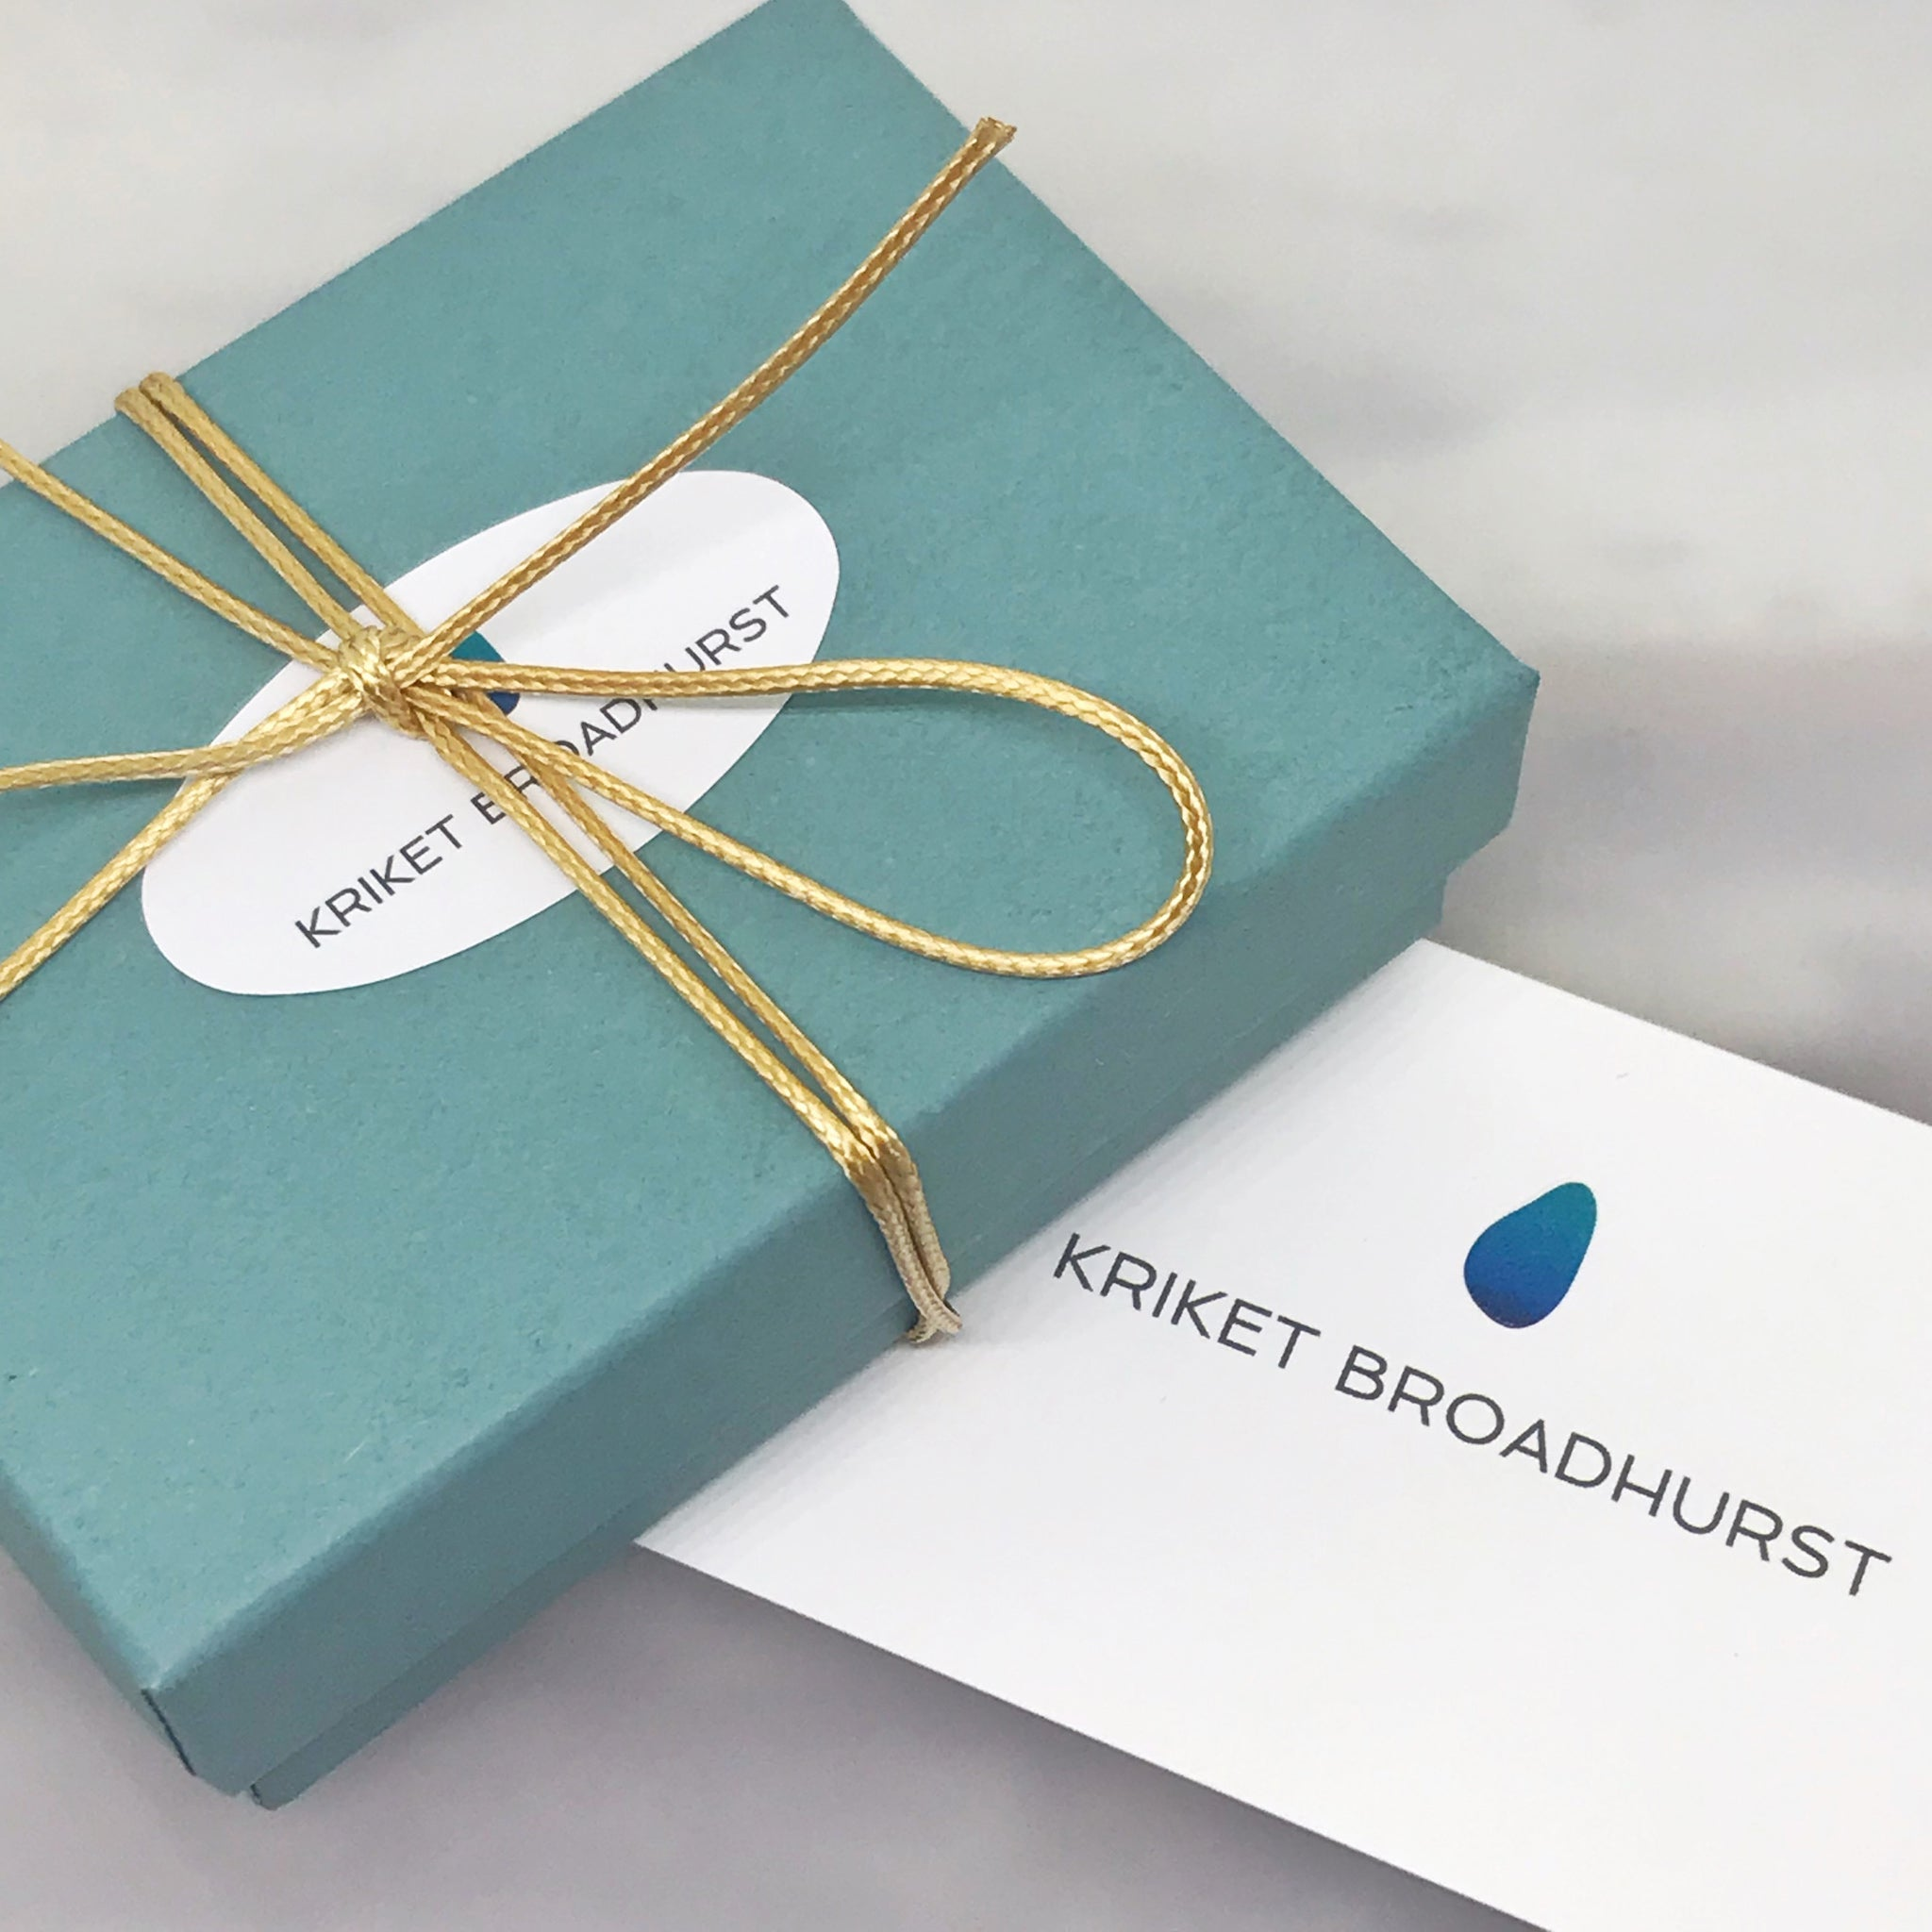 kriket broadhurst jewellery gift box